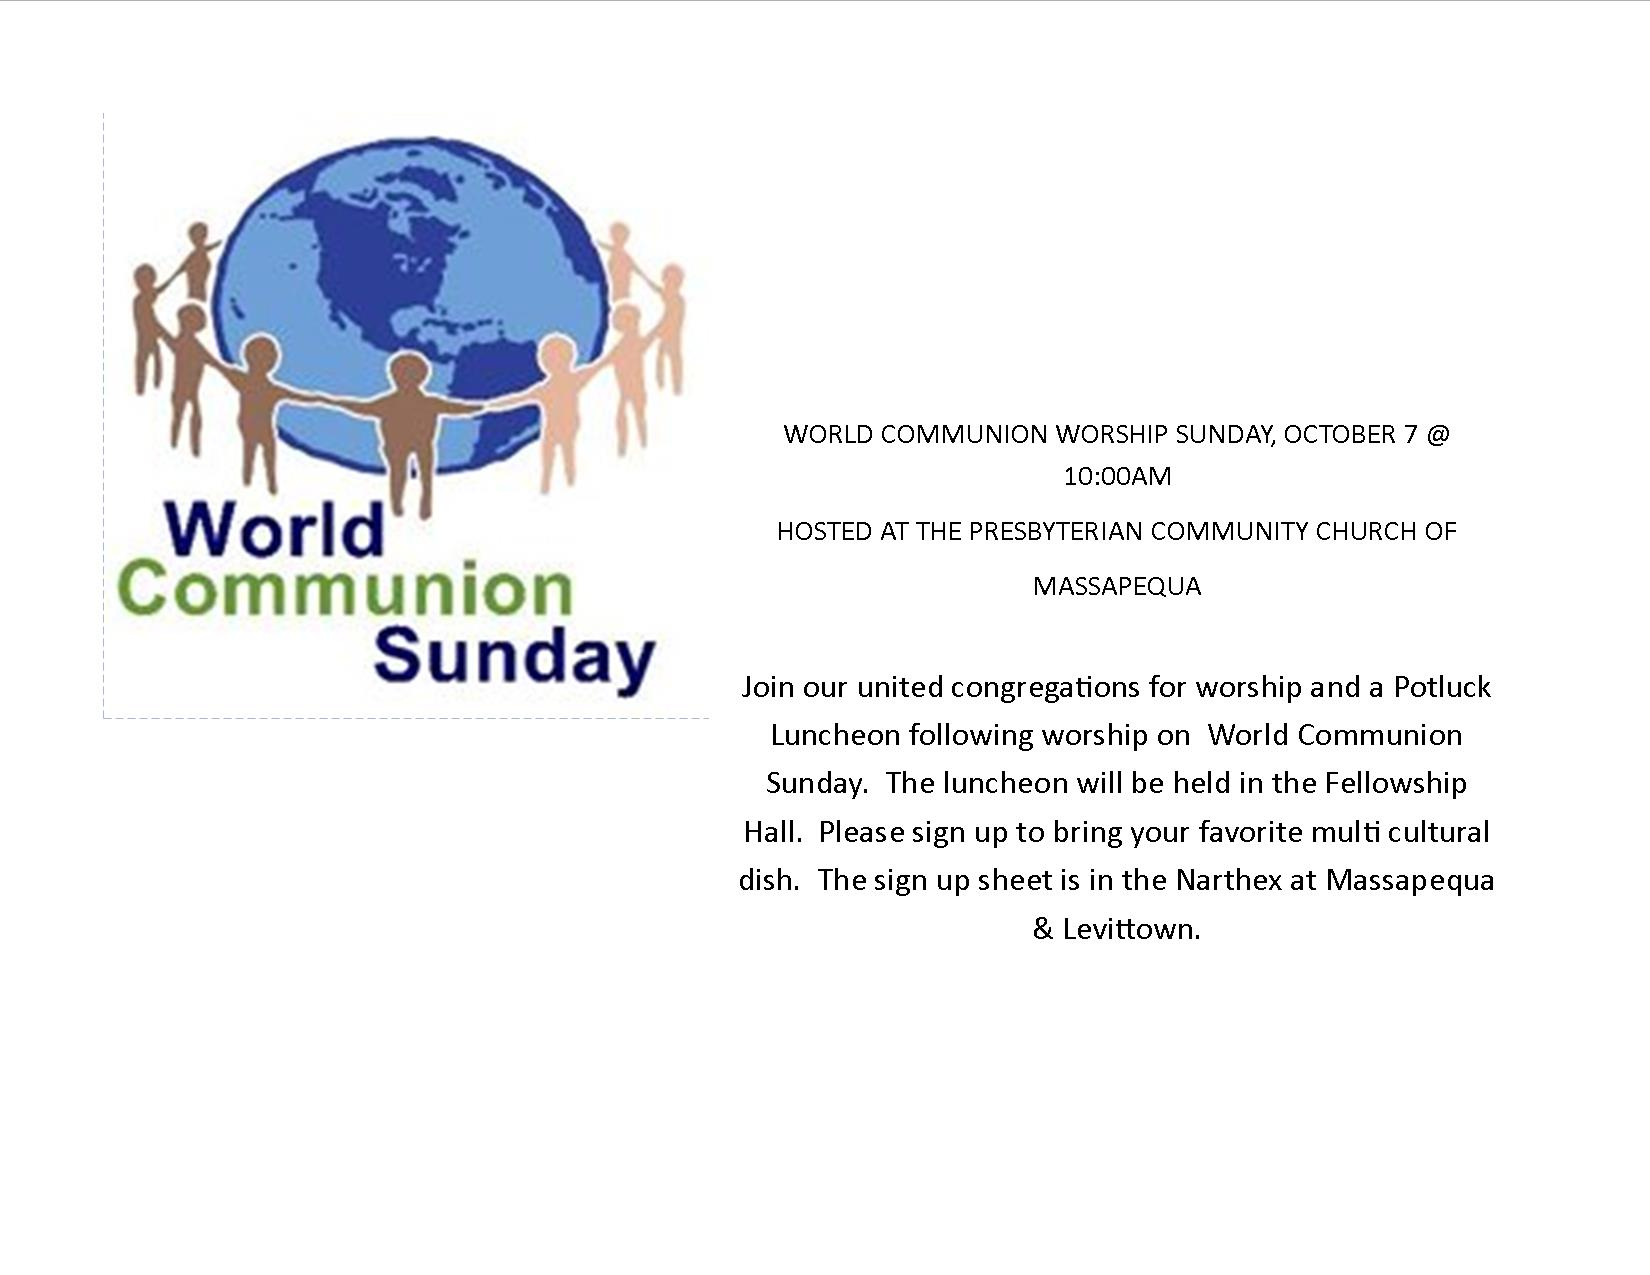 World Communion Sunday - October 7